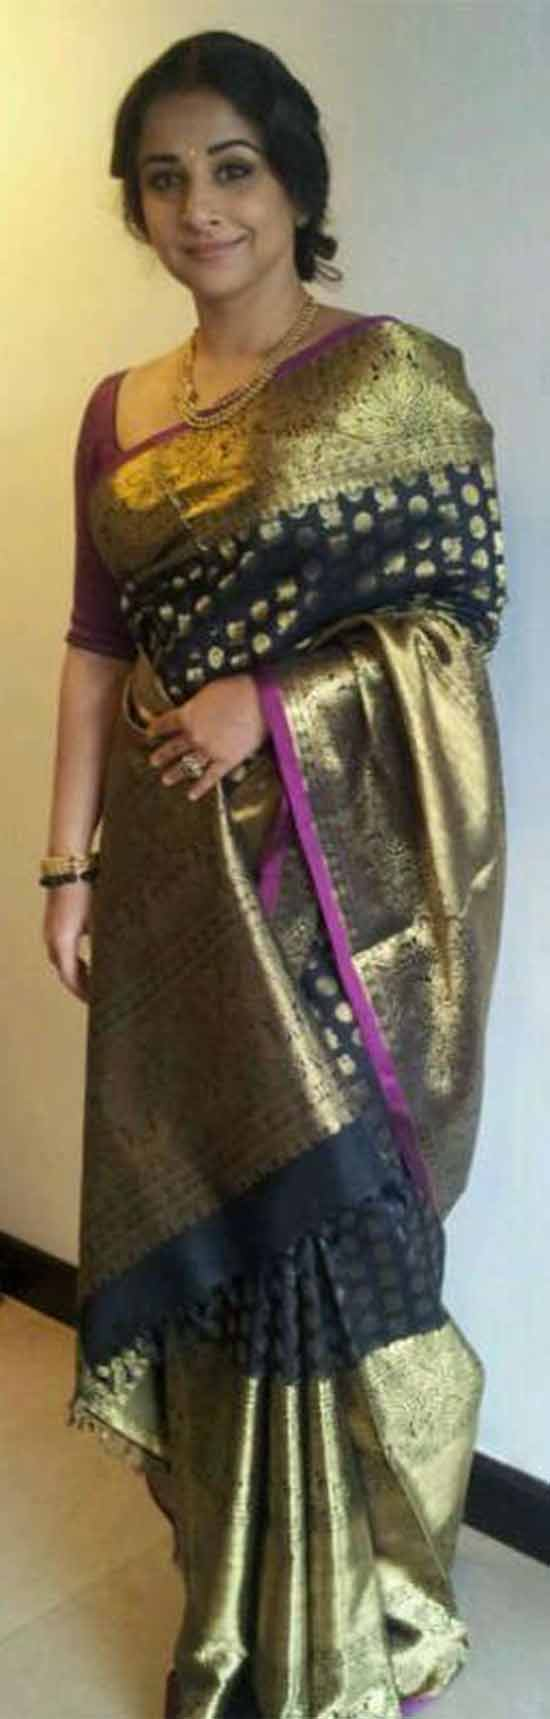 Vidya-Balan-In-Black-Kanjeevaram-Saree-Designed-By-Gauran